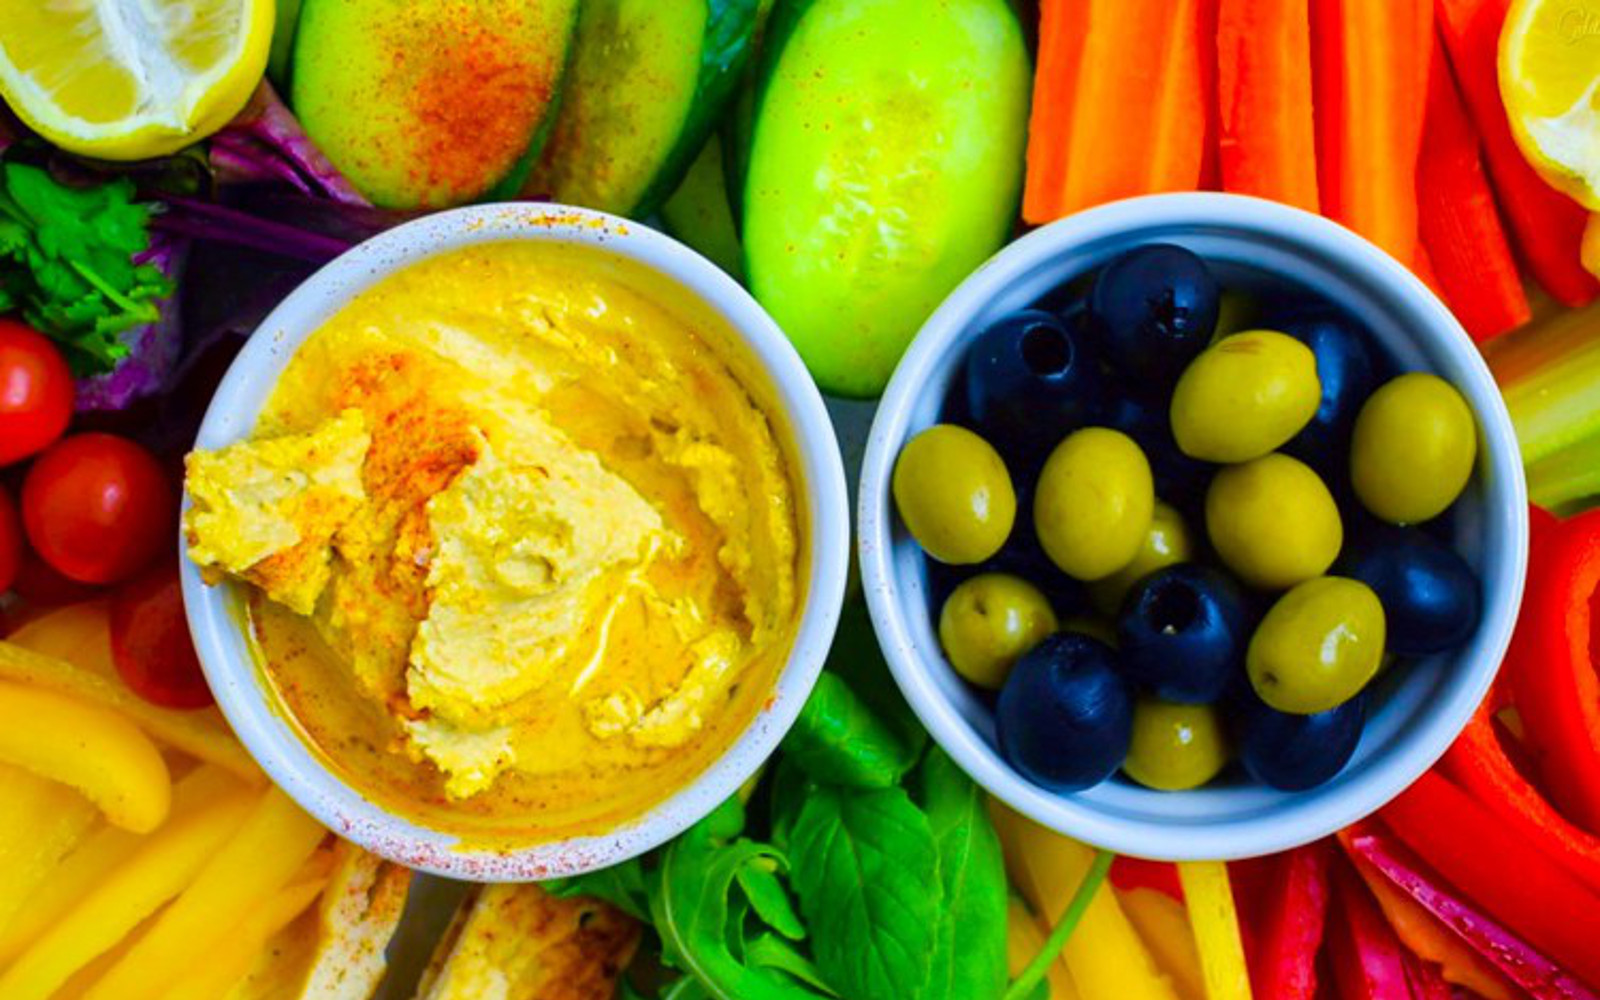 Vegan Gluten-Free Roasted Garlic Hummus with fresh vegetables and olives